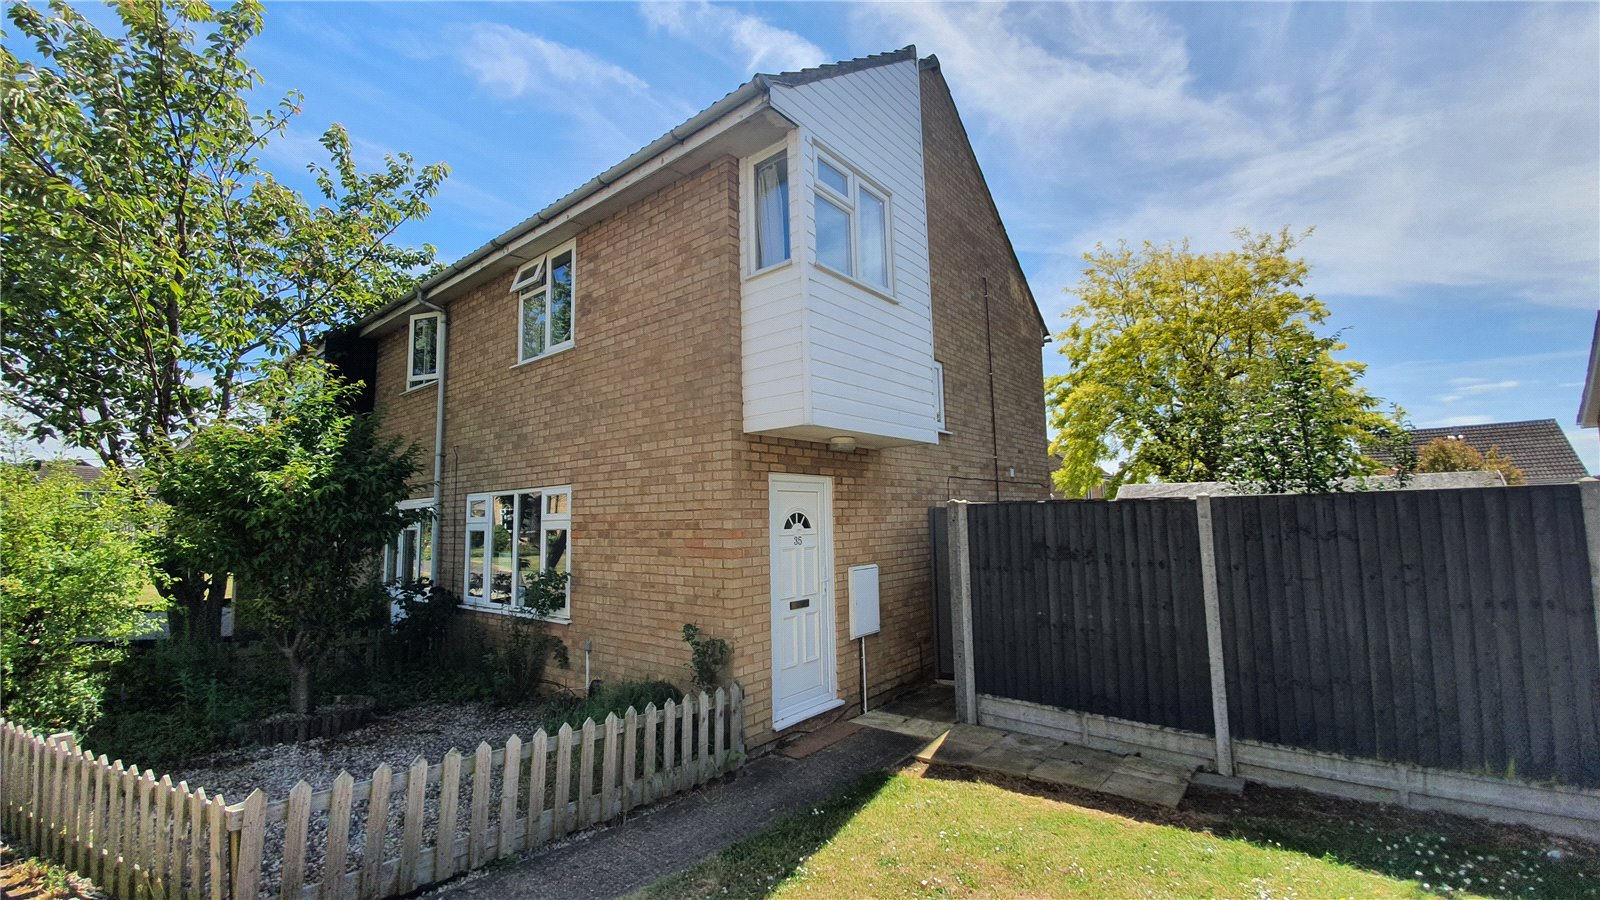 3 bed house for sale in Otter Way, Eaton Socon, PE19